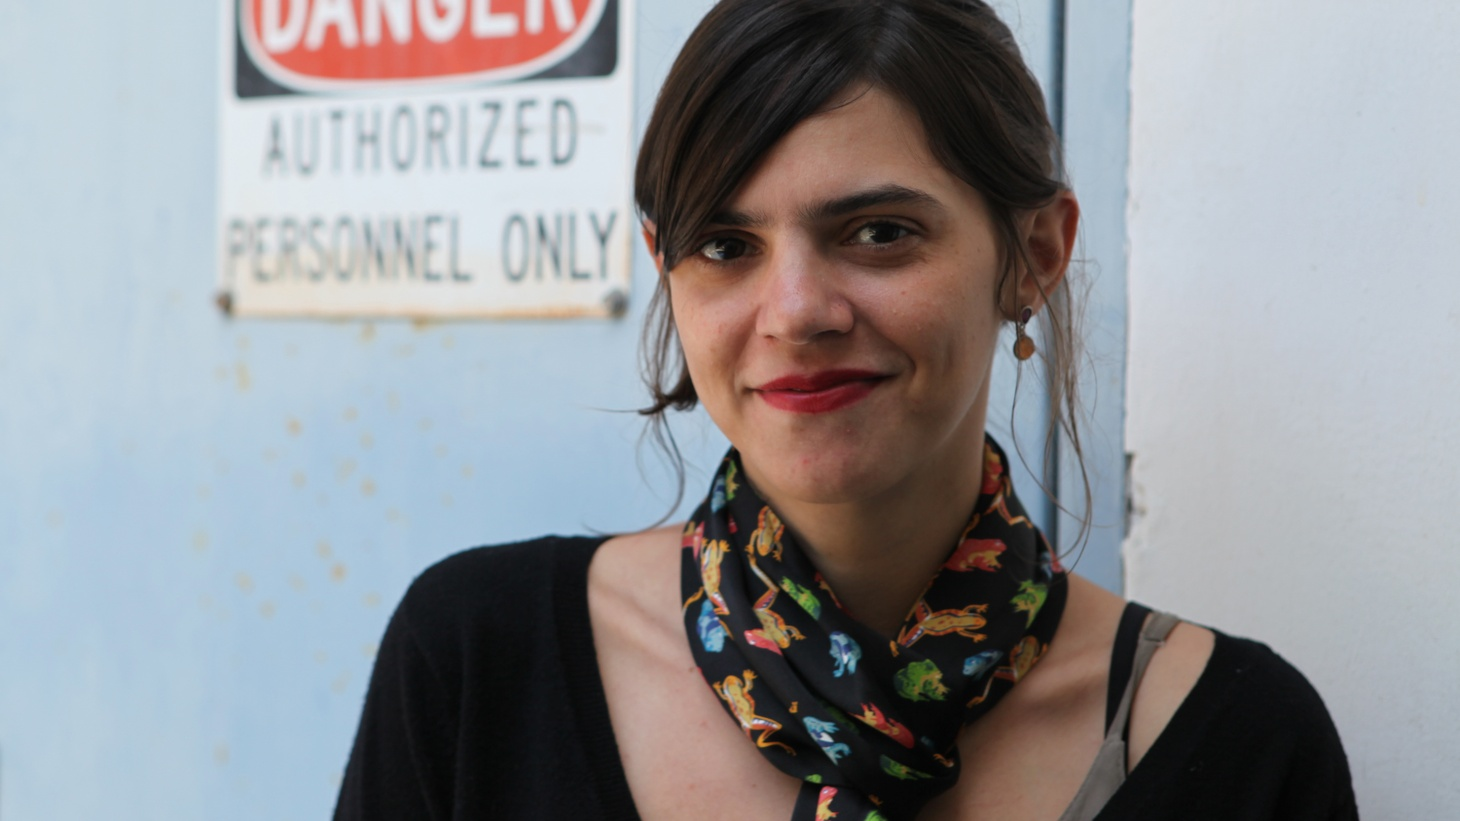 Valeria Luiselli's first novel reminds us of what it's like to be young and in love with literature.